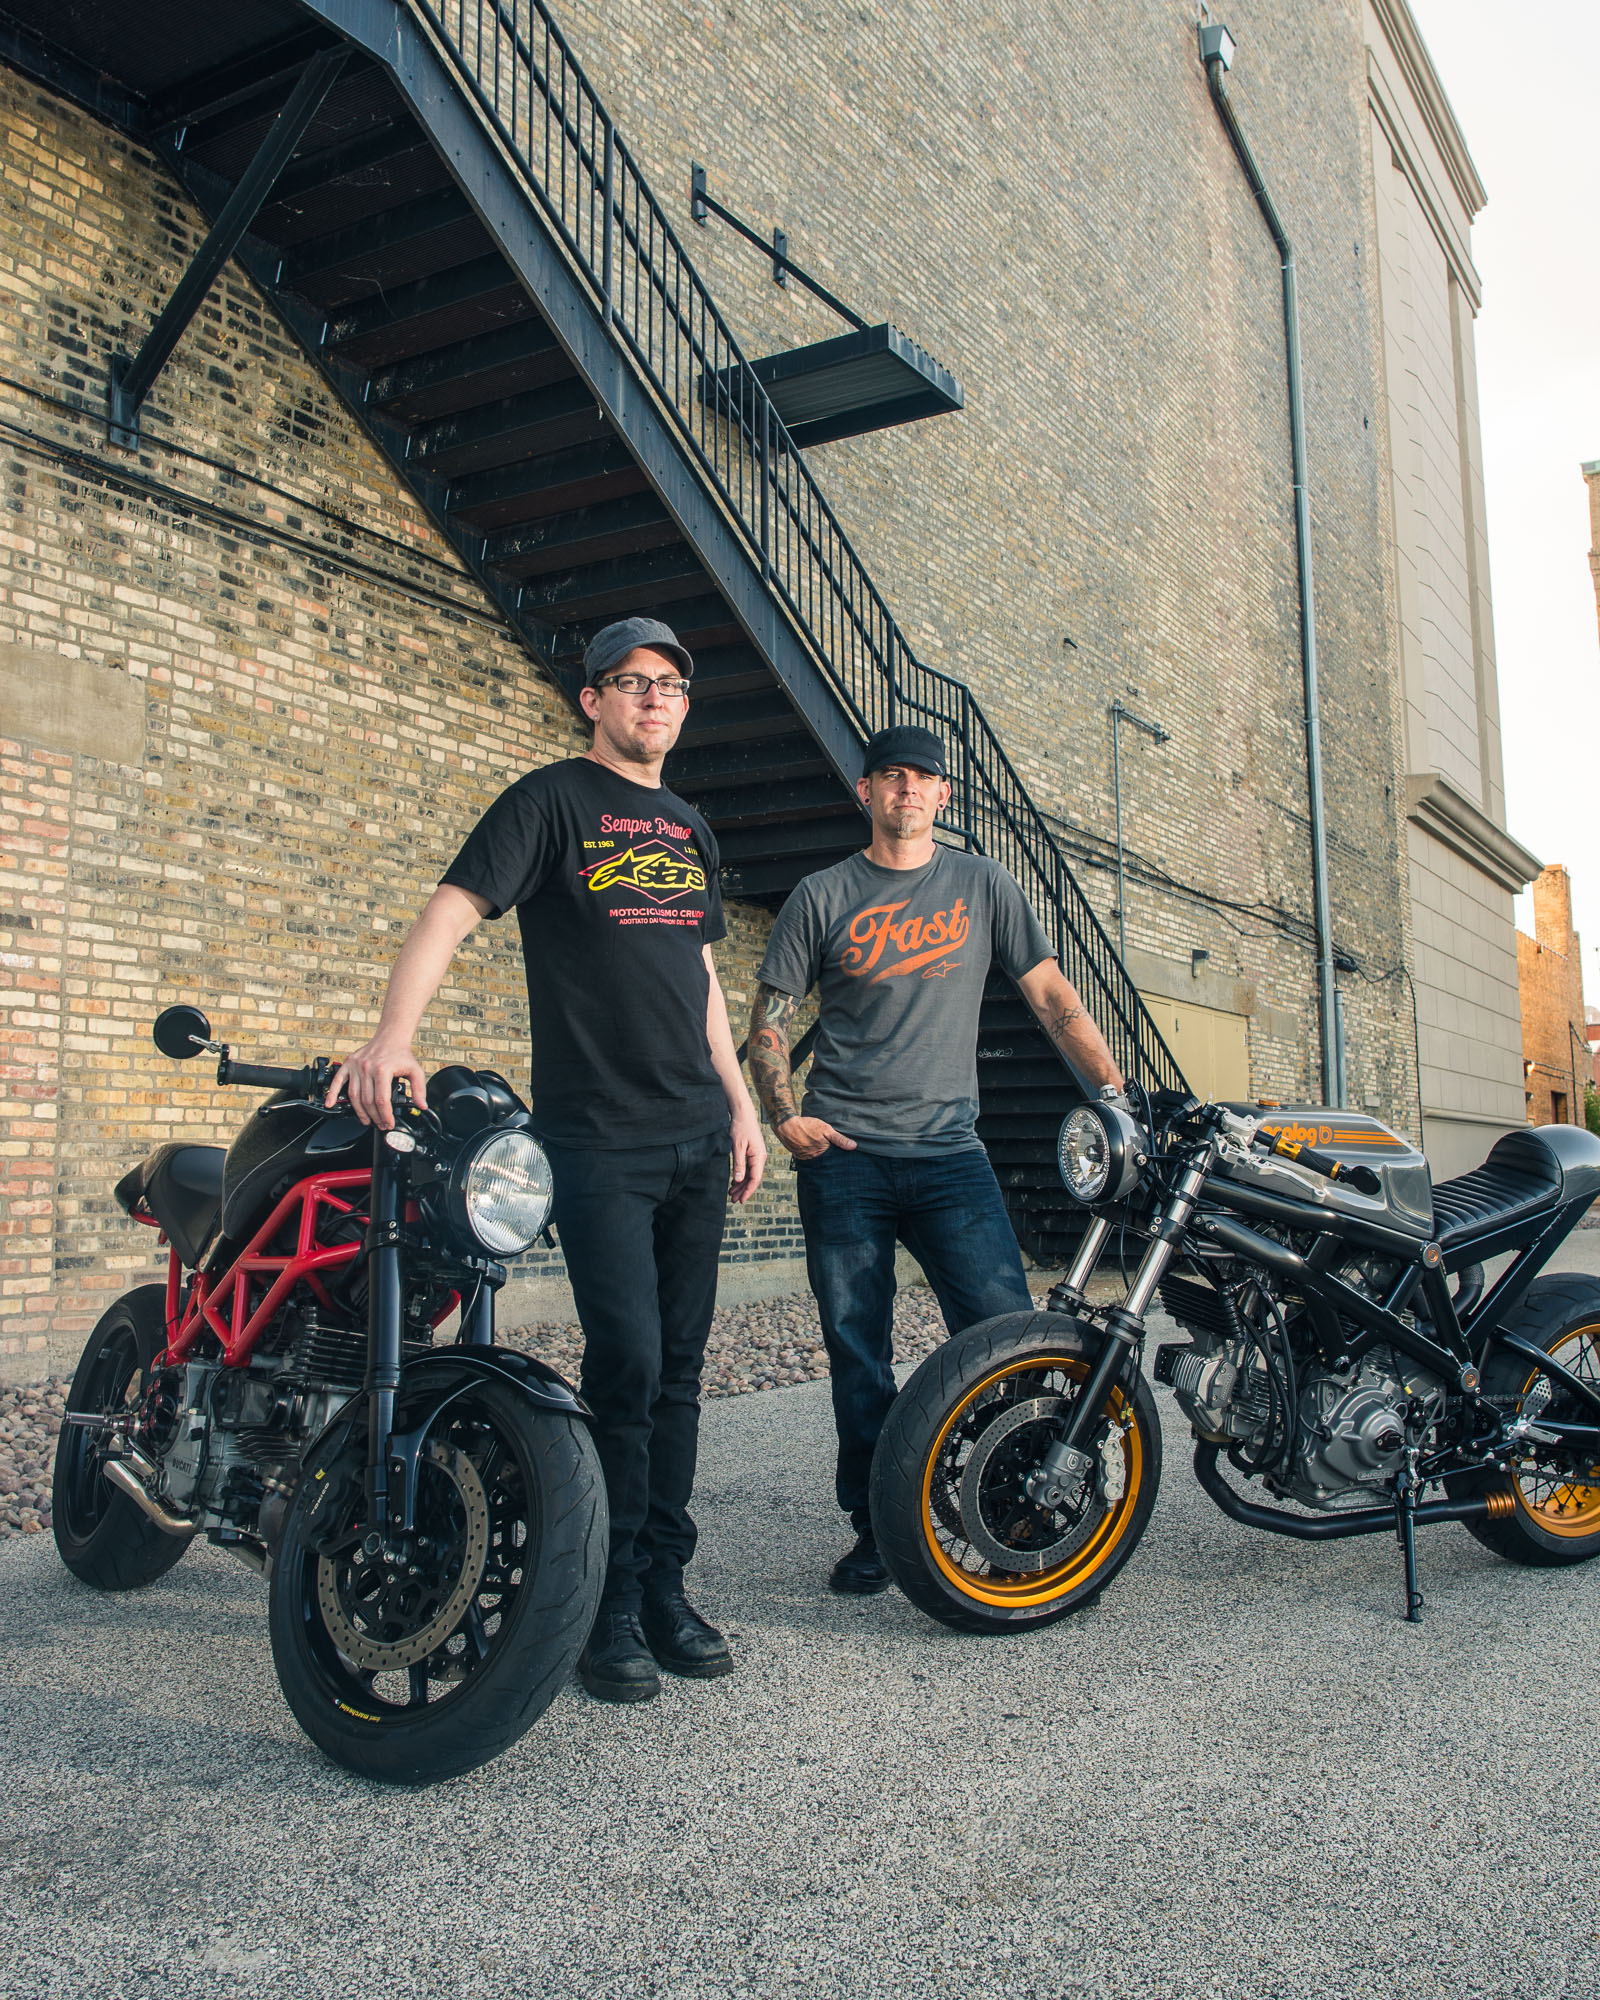 Sam Loeffler and Tony Prust for Sports Bike Inc Magazine